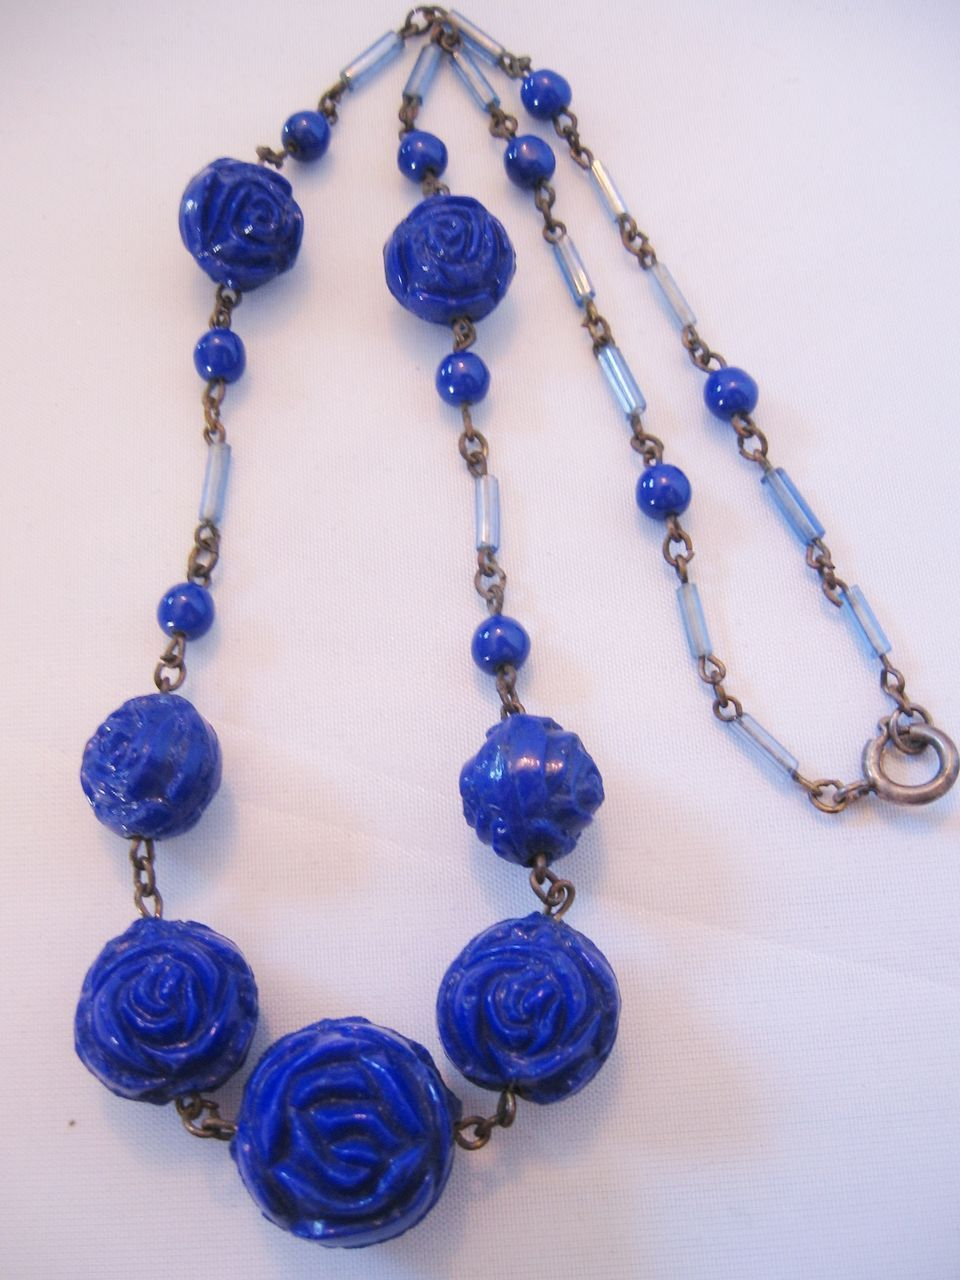 Vintage Art Deco Cobalt Blue Glass Rose Necklace From